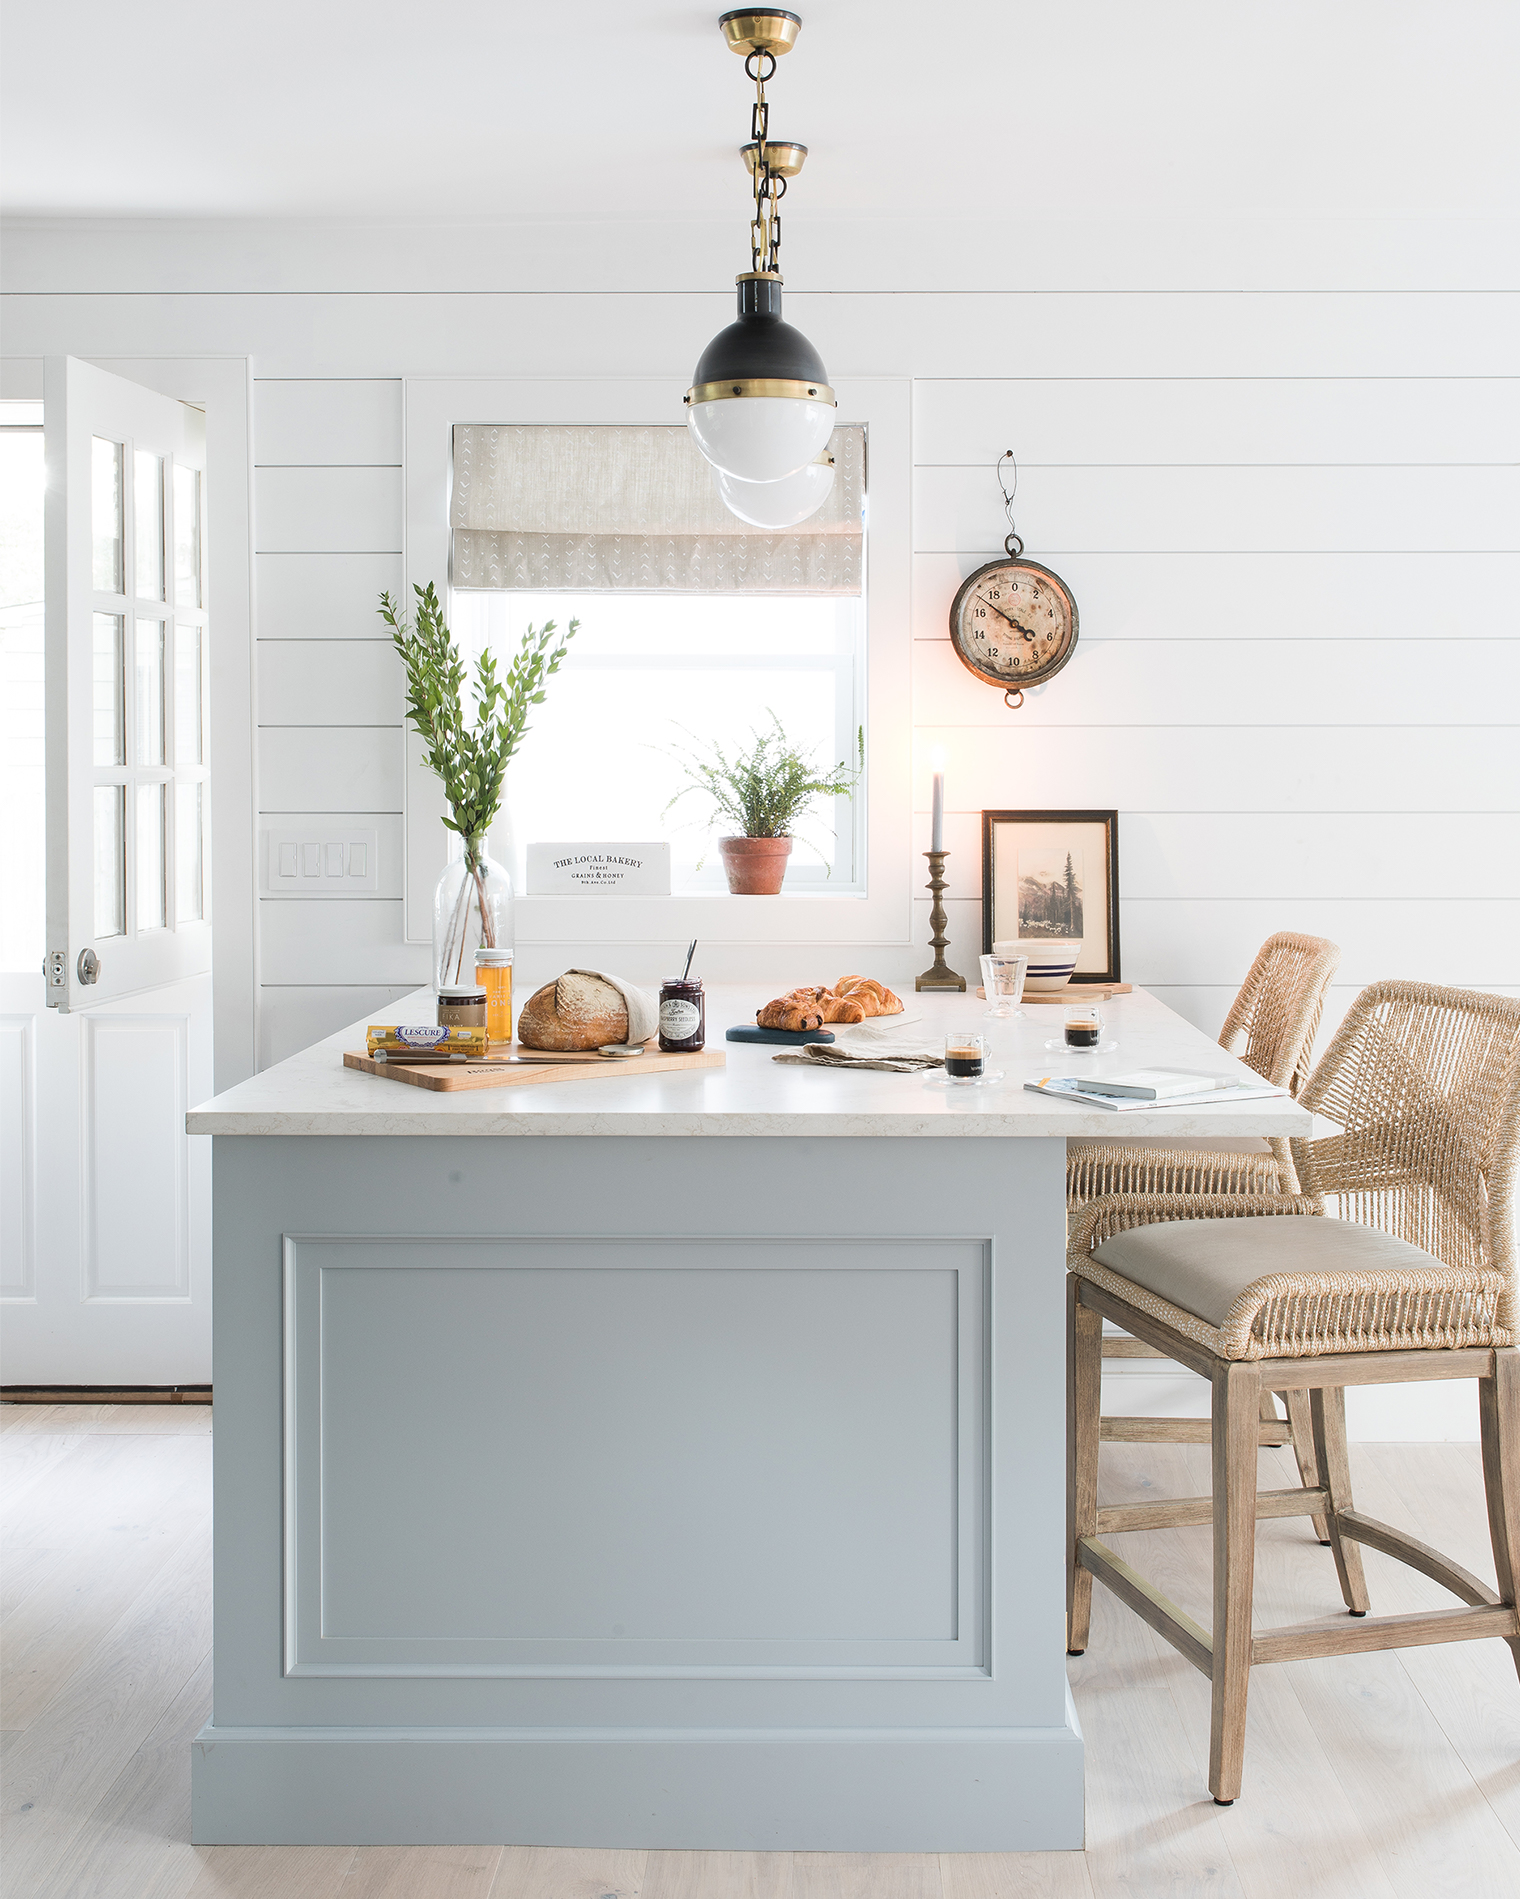 Beach Style Kitchen Cabinets Our Beach House Kitchen The Reveal Bright Bazaar By